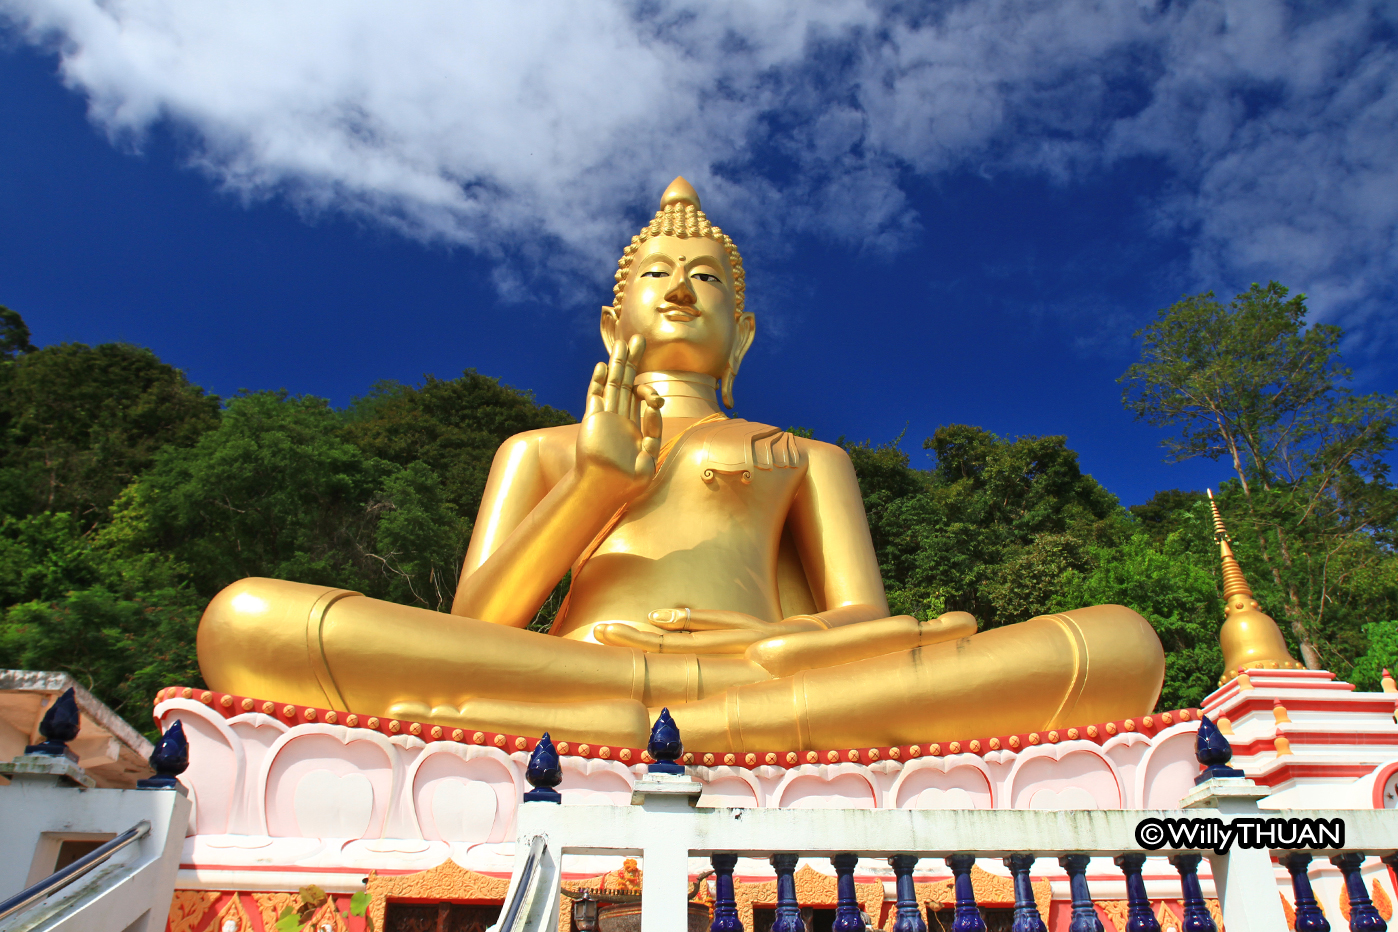 Wat Kao Rang (Kao Rang Temple) and Sitting Buddha